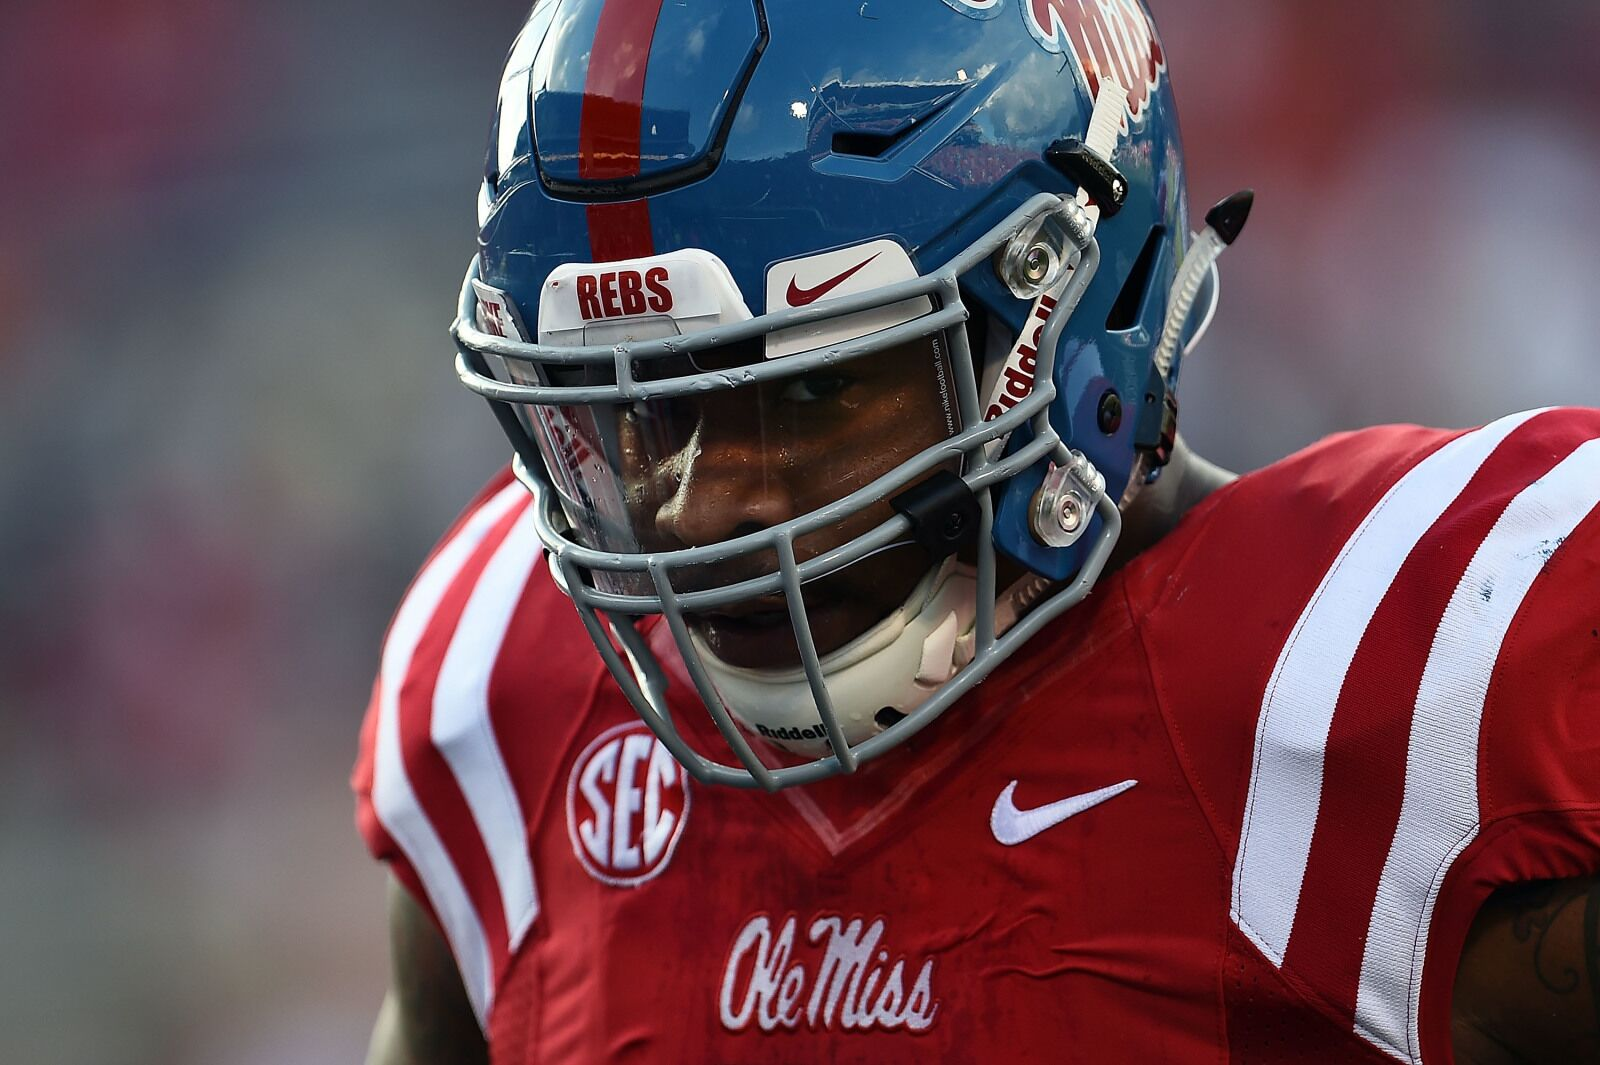 Wasted potential: The disappointing story of Robert Nkemdiche